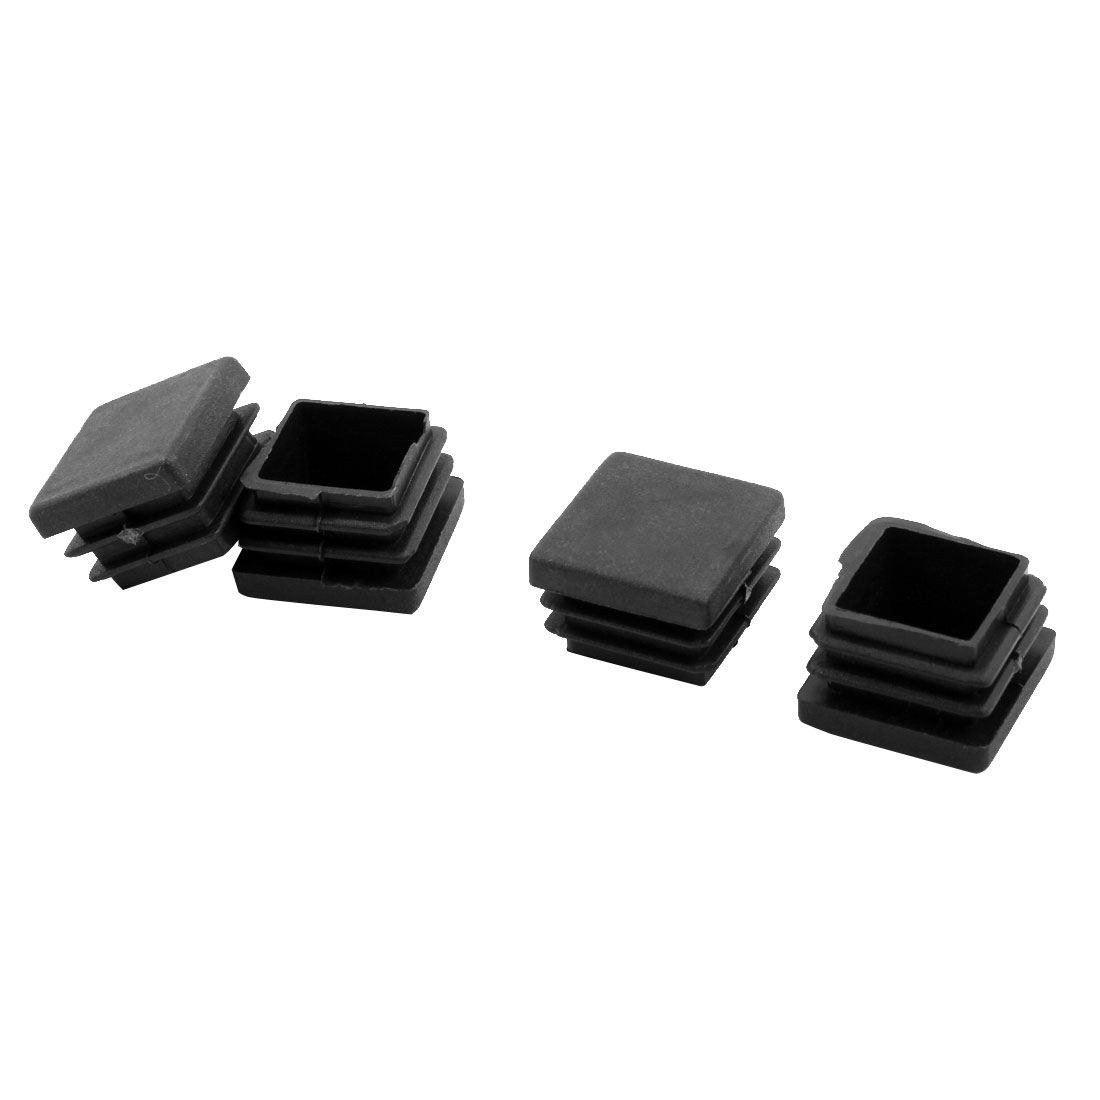 Home Square Shape Furniture Chair Feet Tube Inserts End Blanking Cap Black 4 Pcs